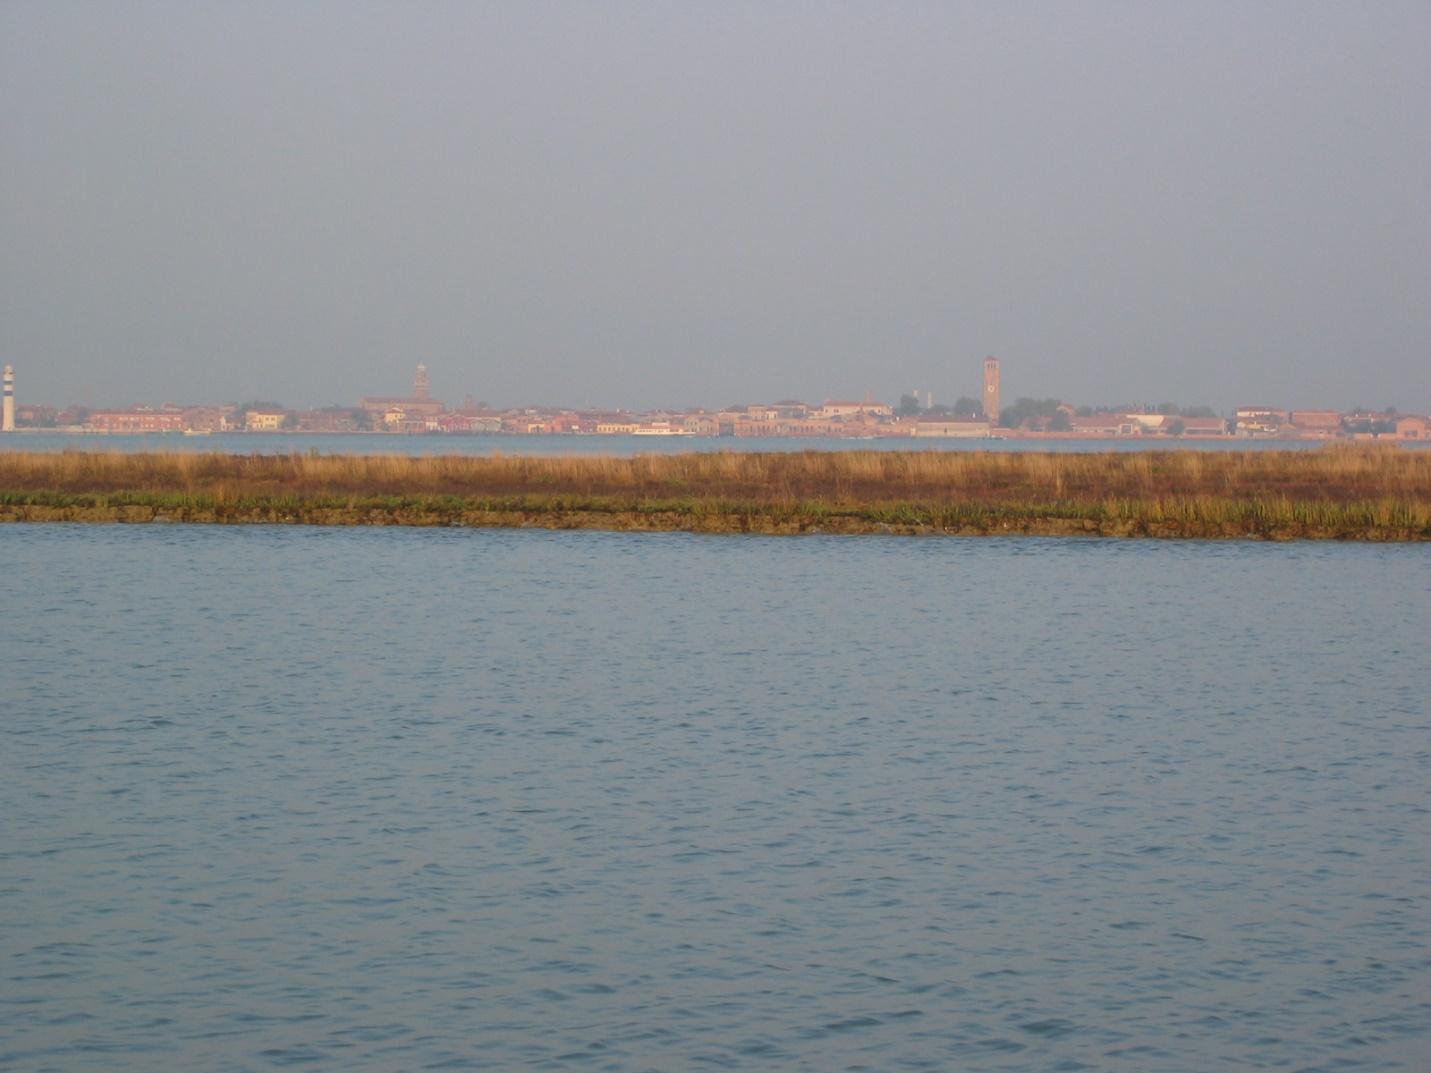 An image of marsh resilience